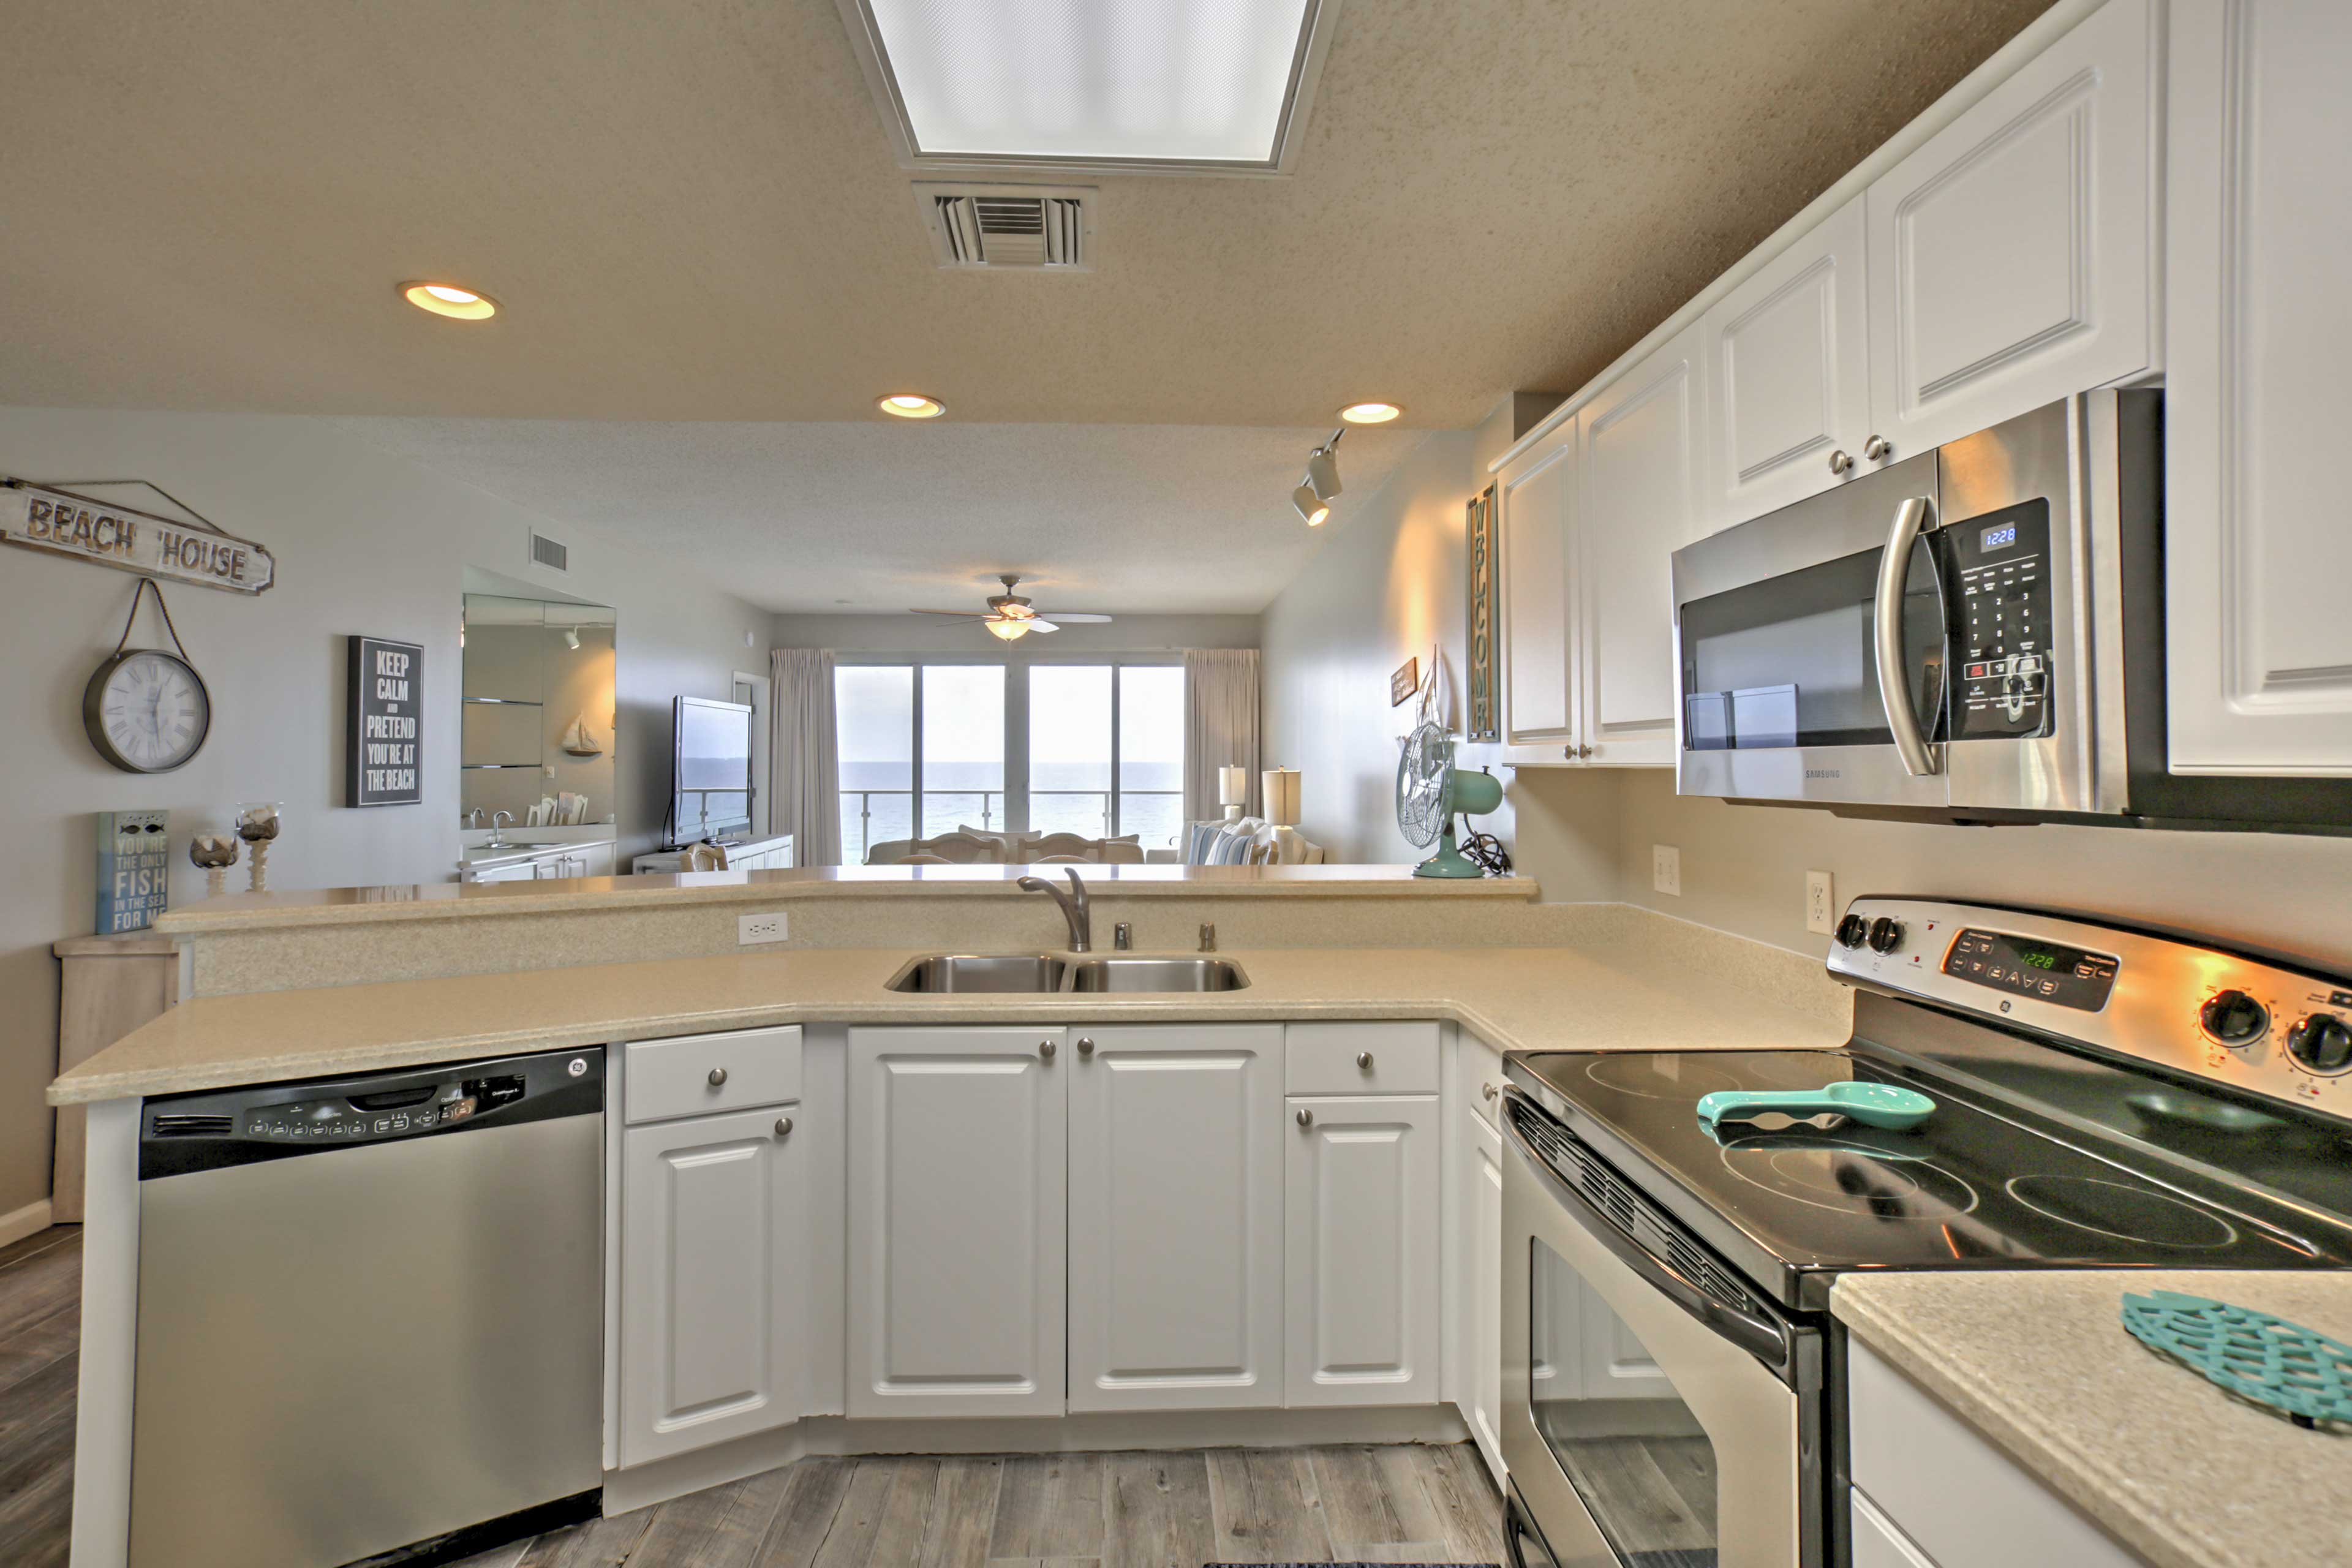 The fully equipped kitchen offers stainless steel appliances, and breakfast bar.